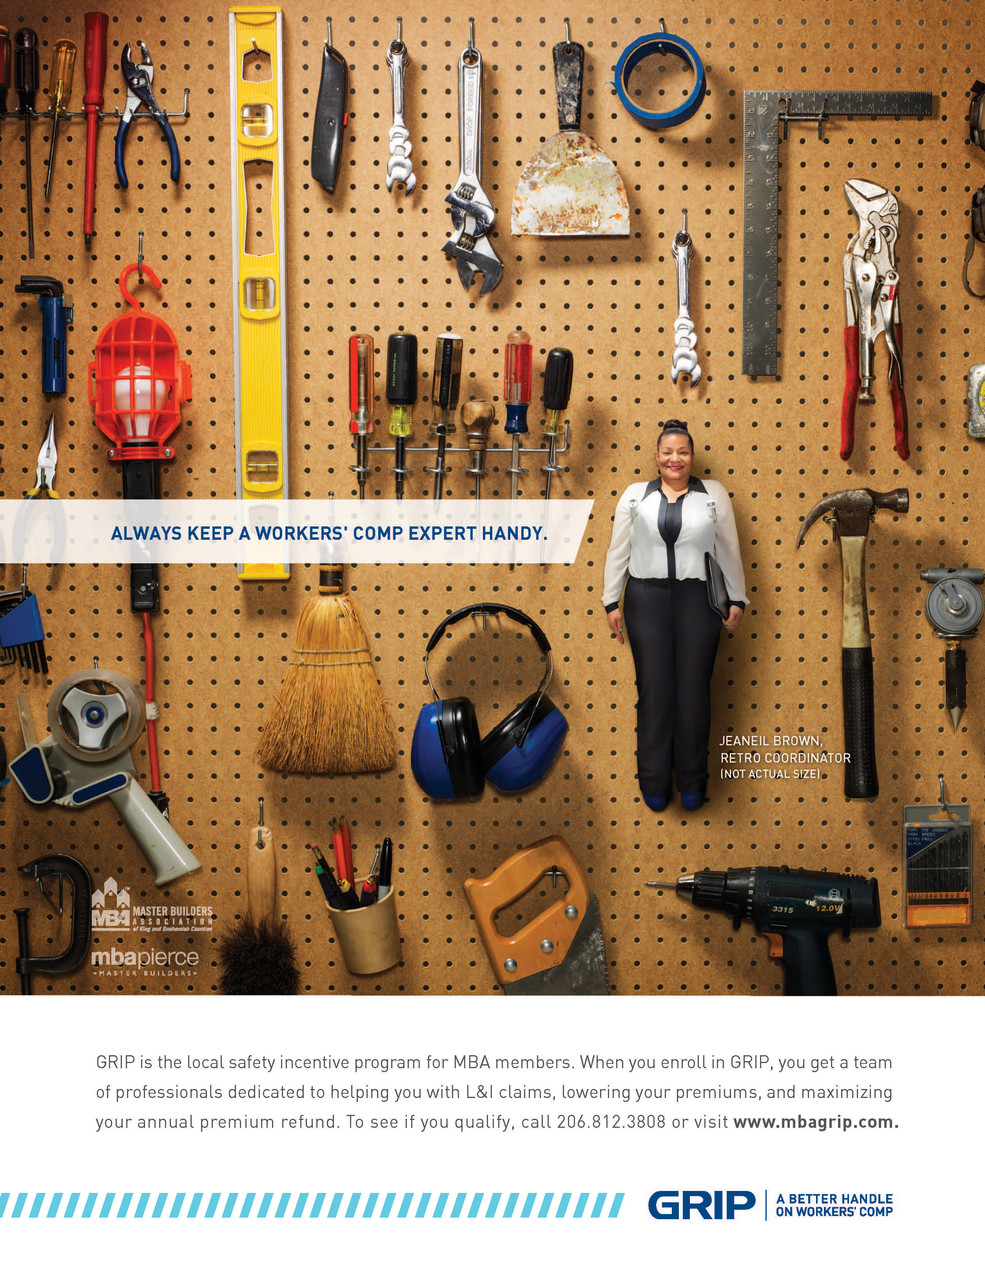 Print Ad for Master Builders Association (concept extended to email, direct, and web)